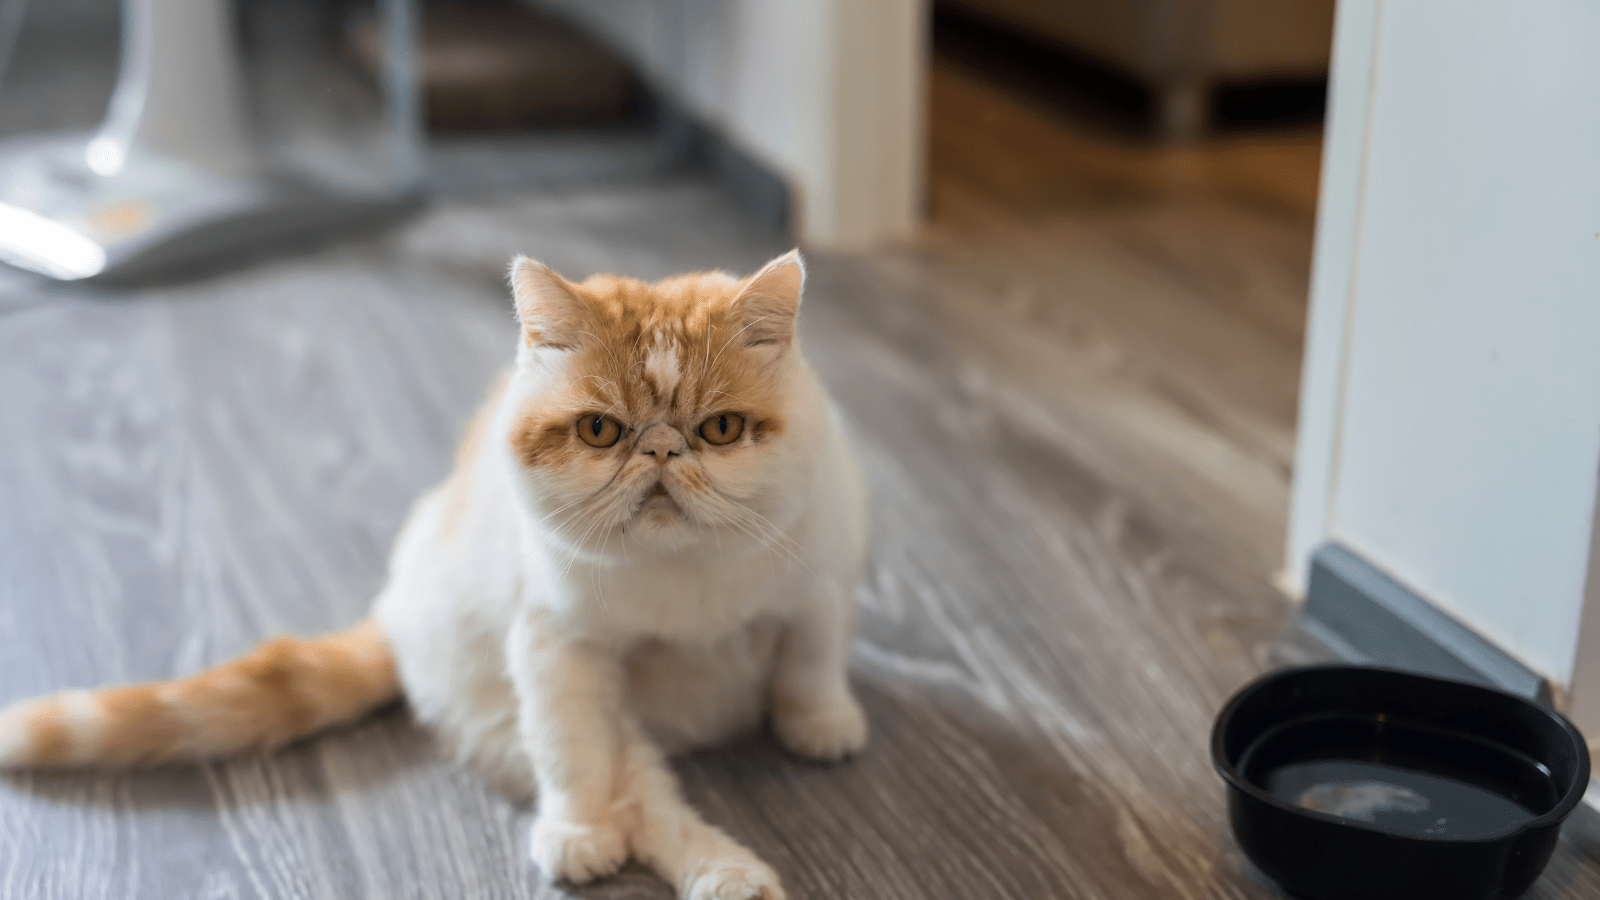 How to get rid of cat odor in apartment